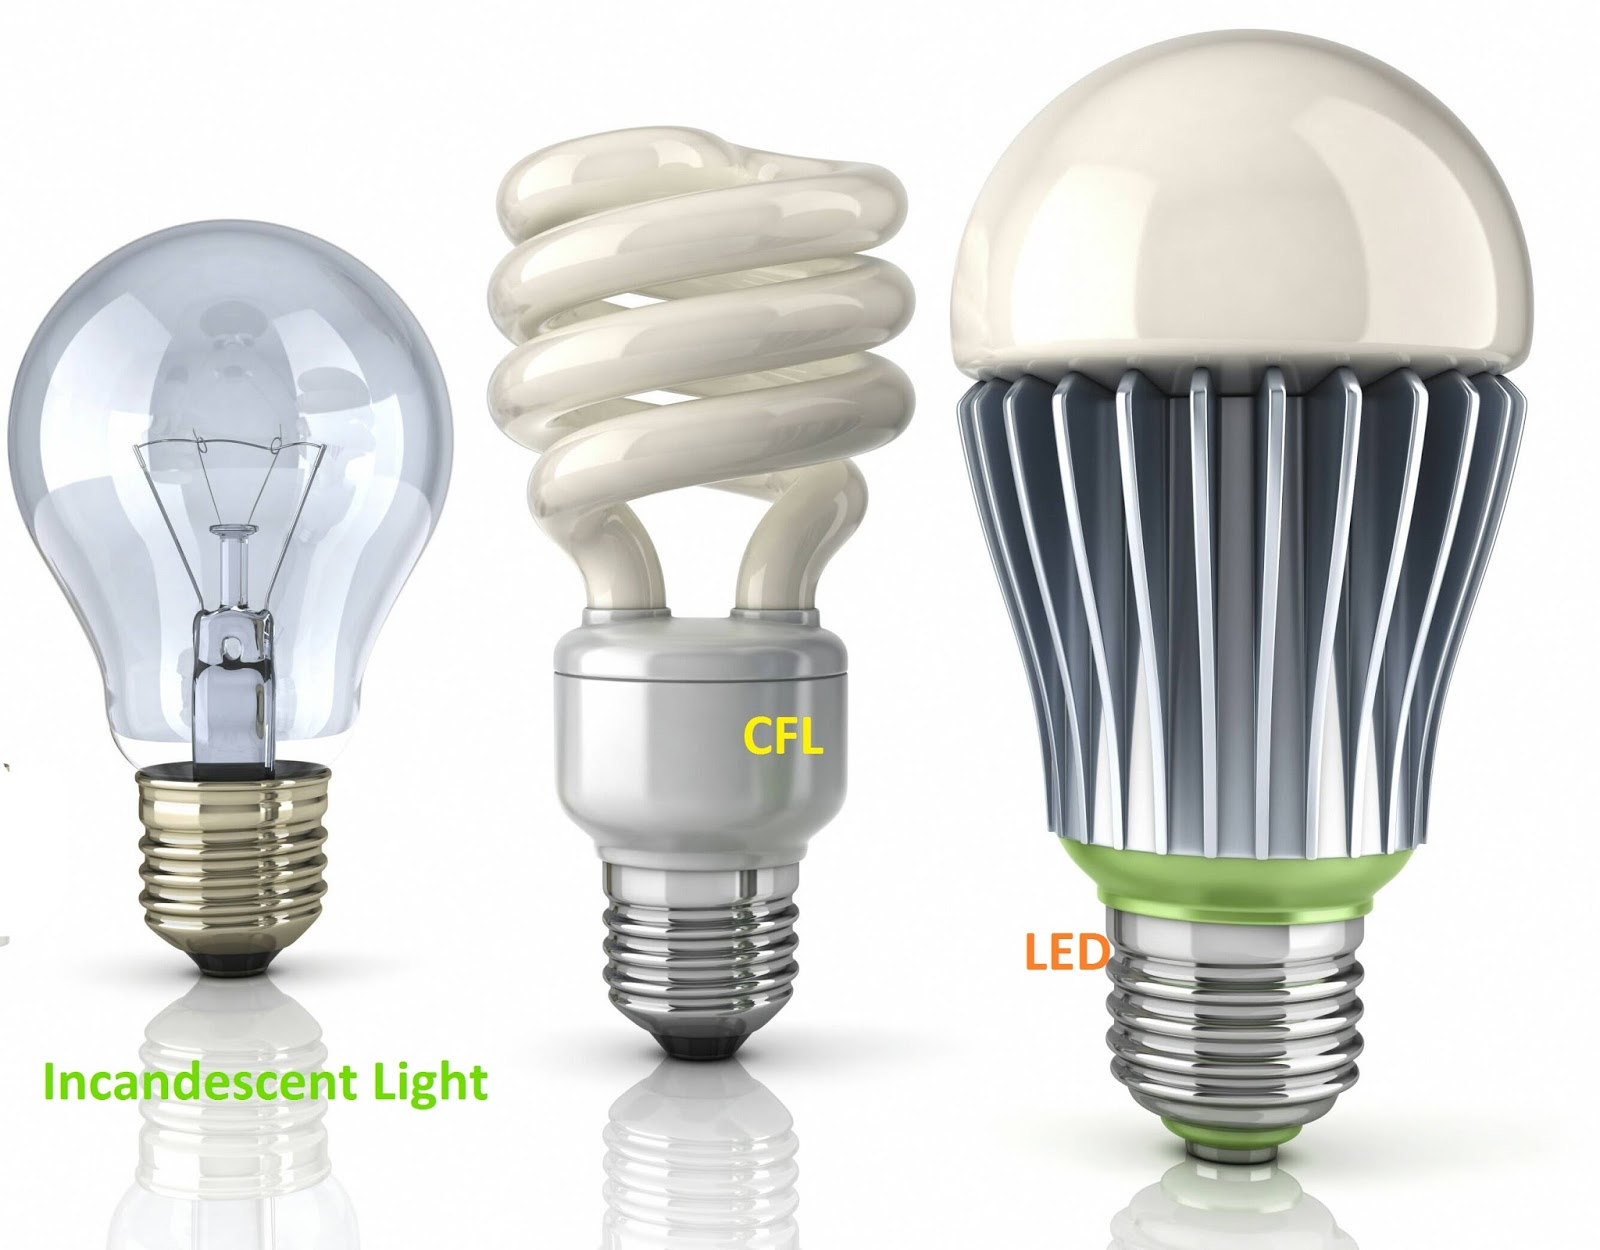 edyeazul Solar   Electronics   Which light Bulb is the best     Which light Bulb is the best   Incandescent  CFL  LED  Review